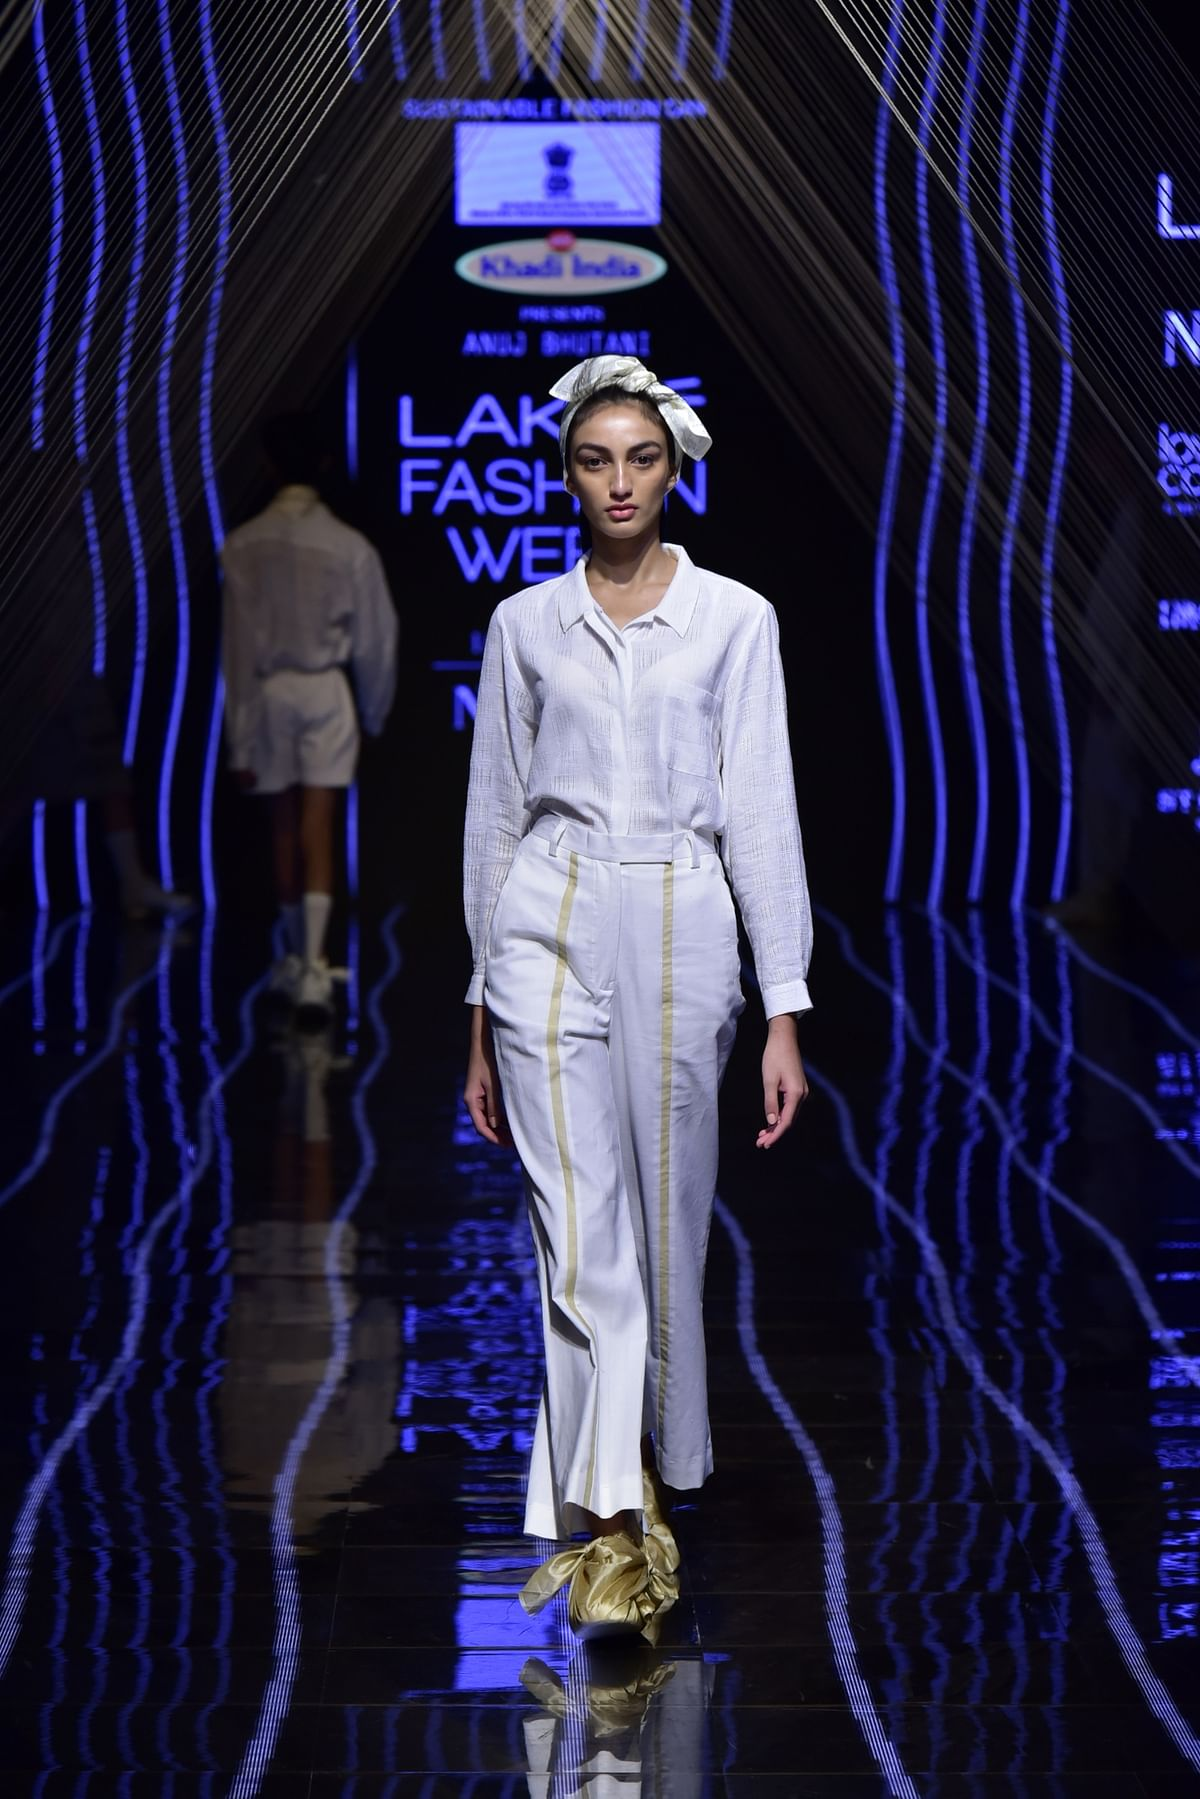 Highlights from Day 2 at Lakmé Fashion Week Winter/Festive 2019